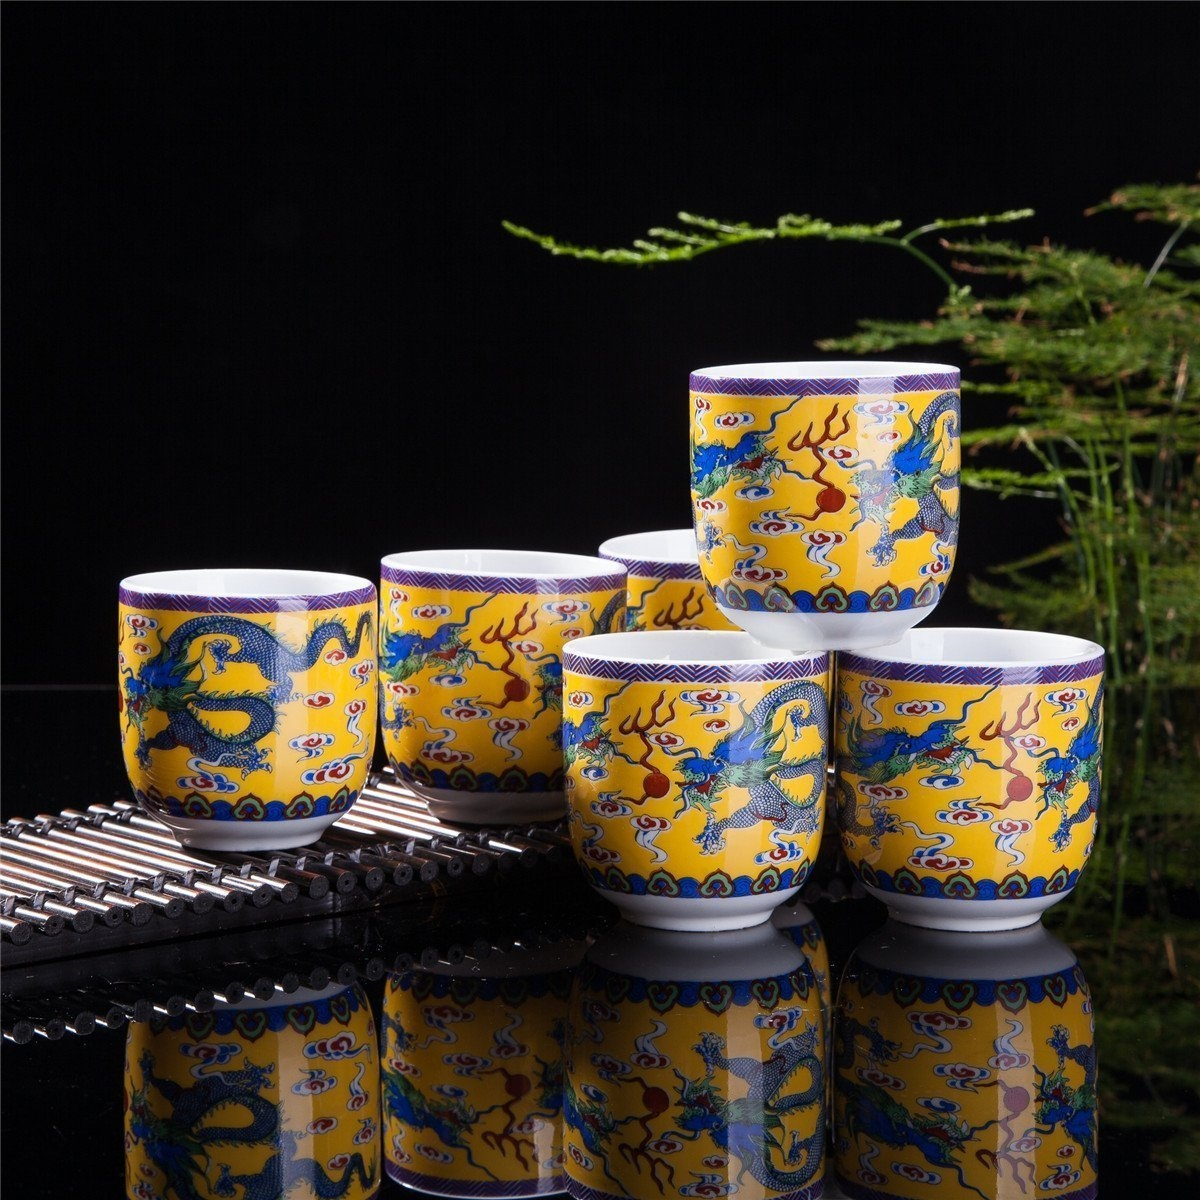 Set Of 6 Eastern Asian Design Ceramic Tea Cups In Yellow Dragon - 8 OZ Capacity Each